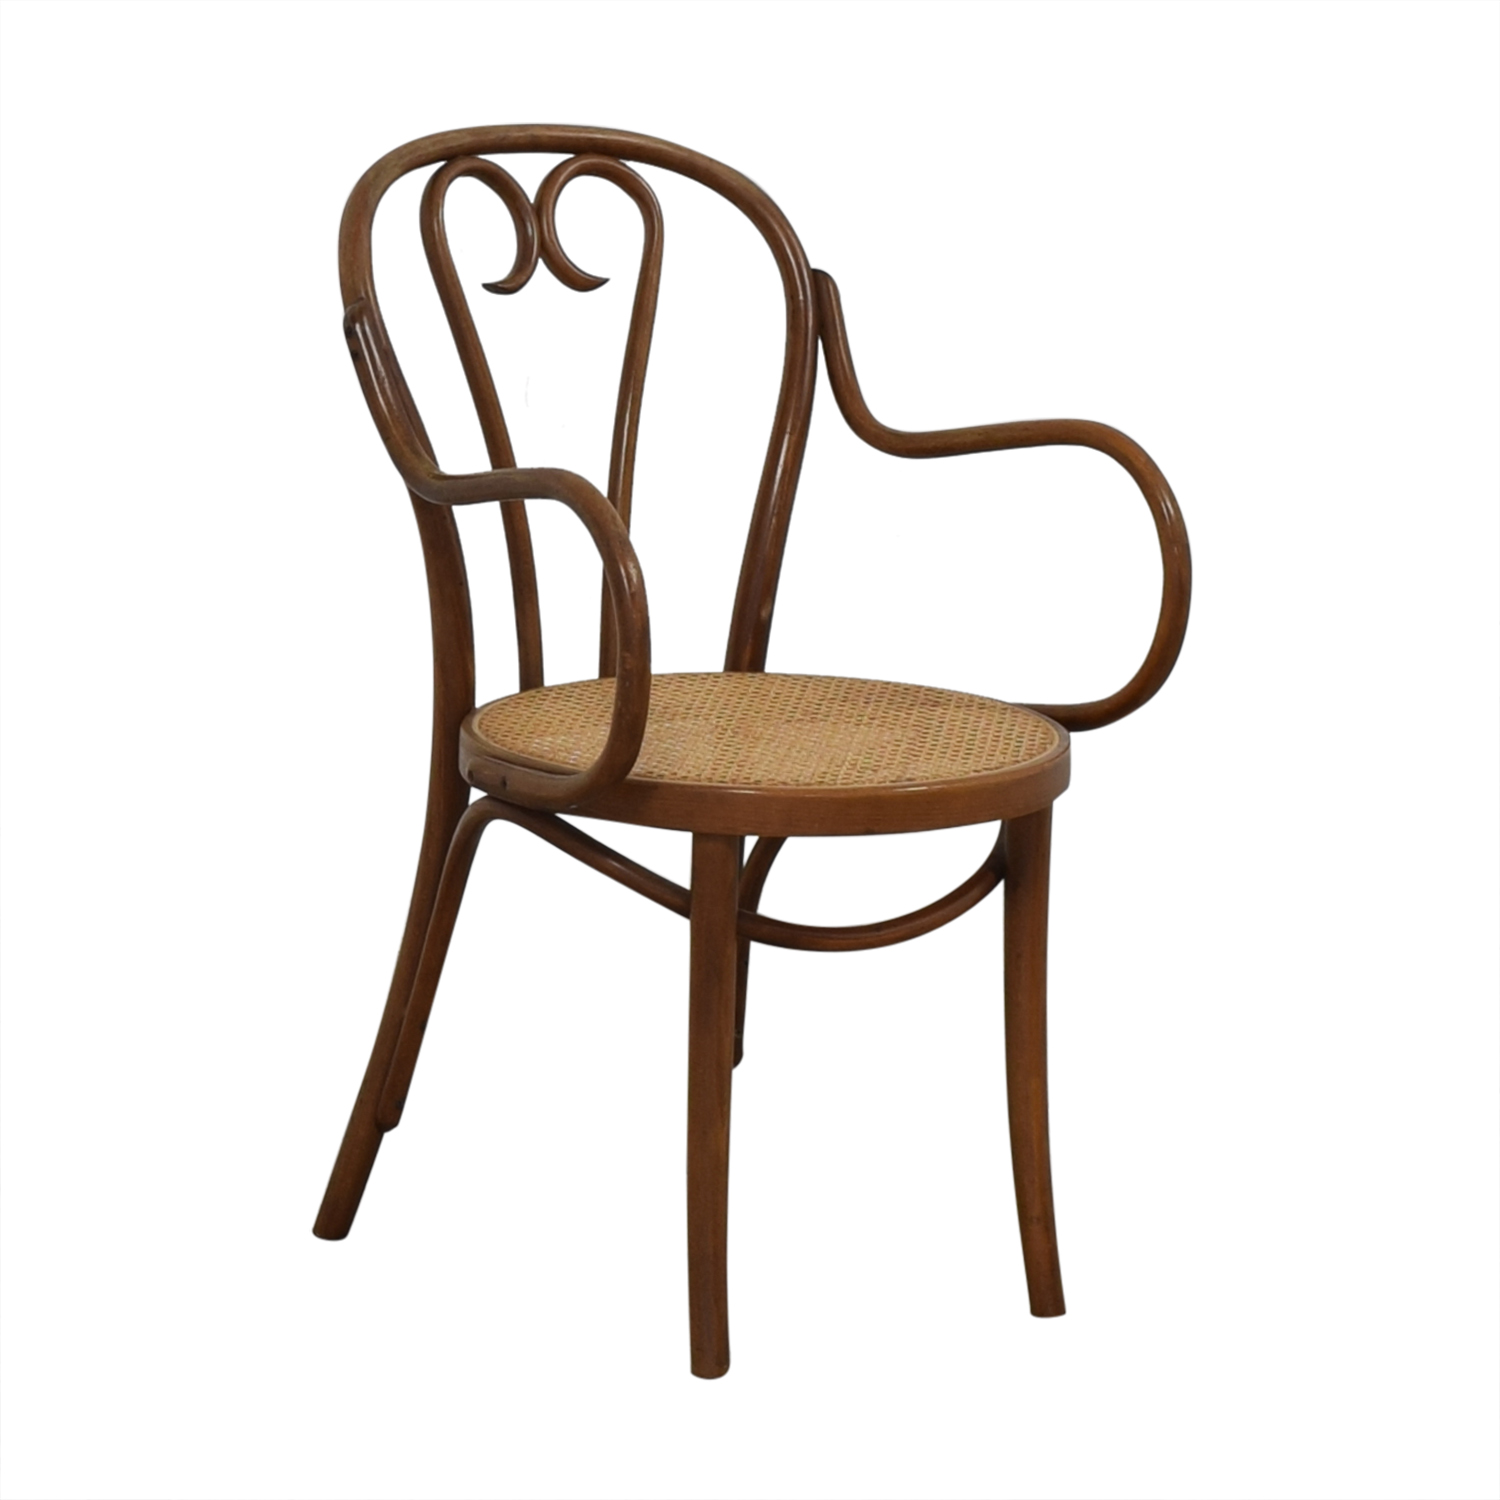 Thonet Thonet Bentwood Bistro Chair used